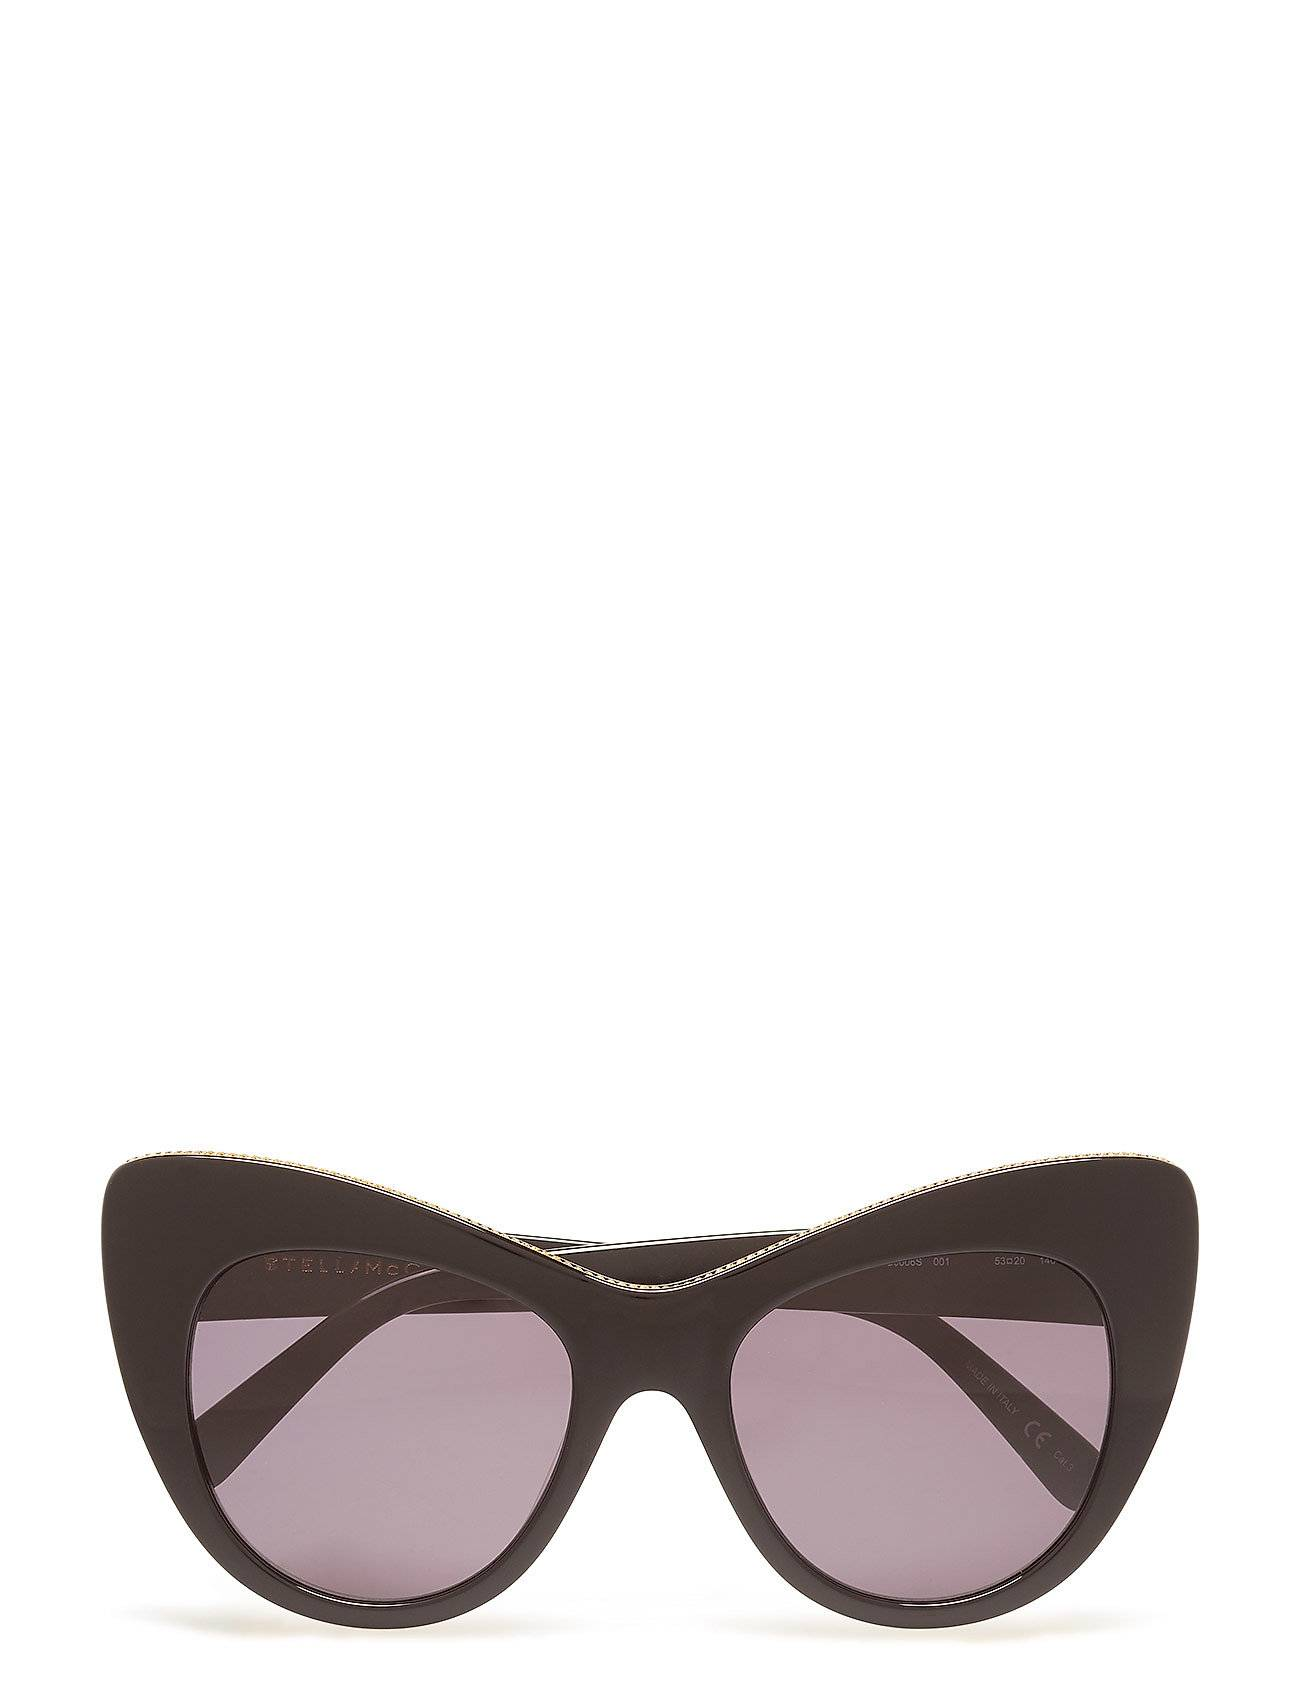 Stella McCartney Eyewear Sc0006s